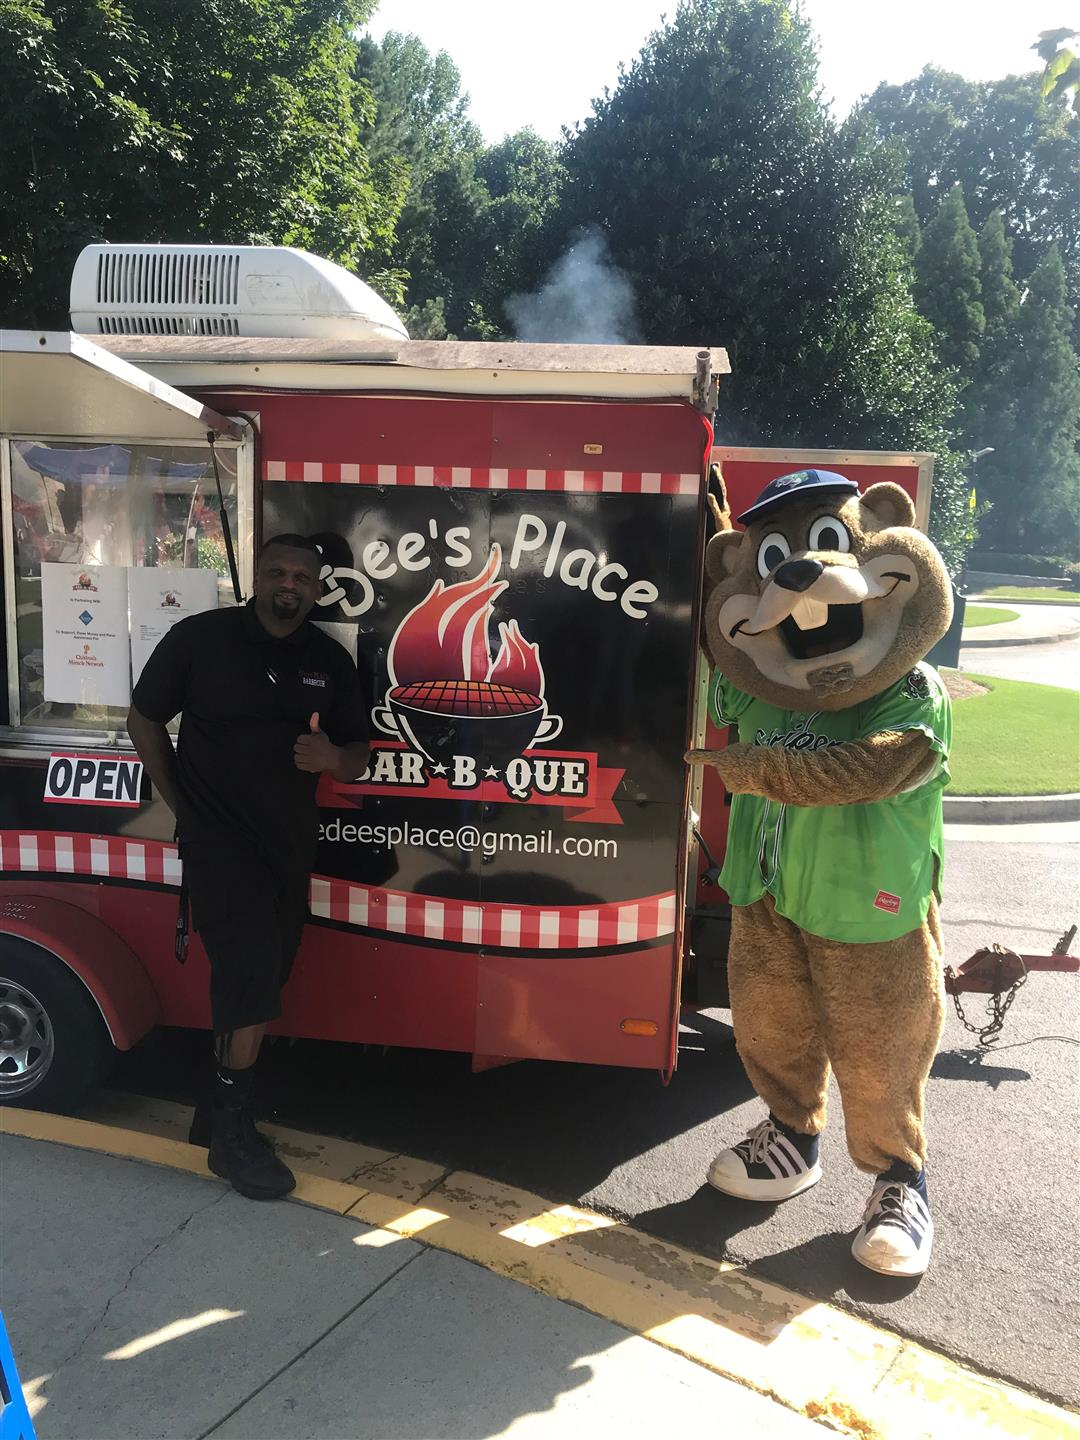 edmund and a mascot standing next to the Edee's Place food truck